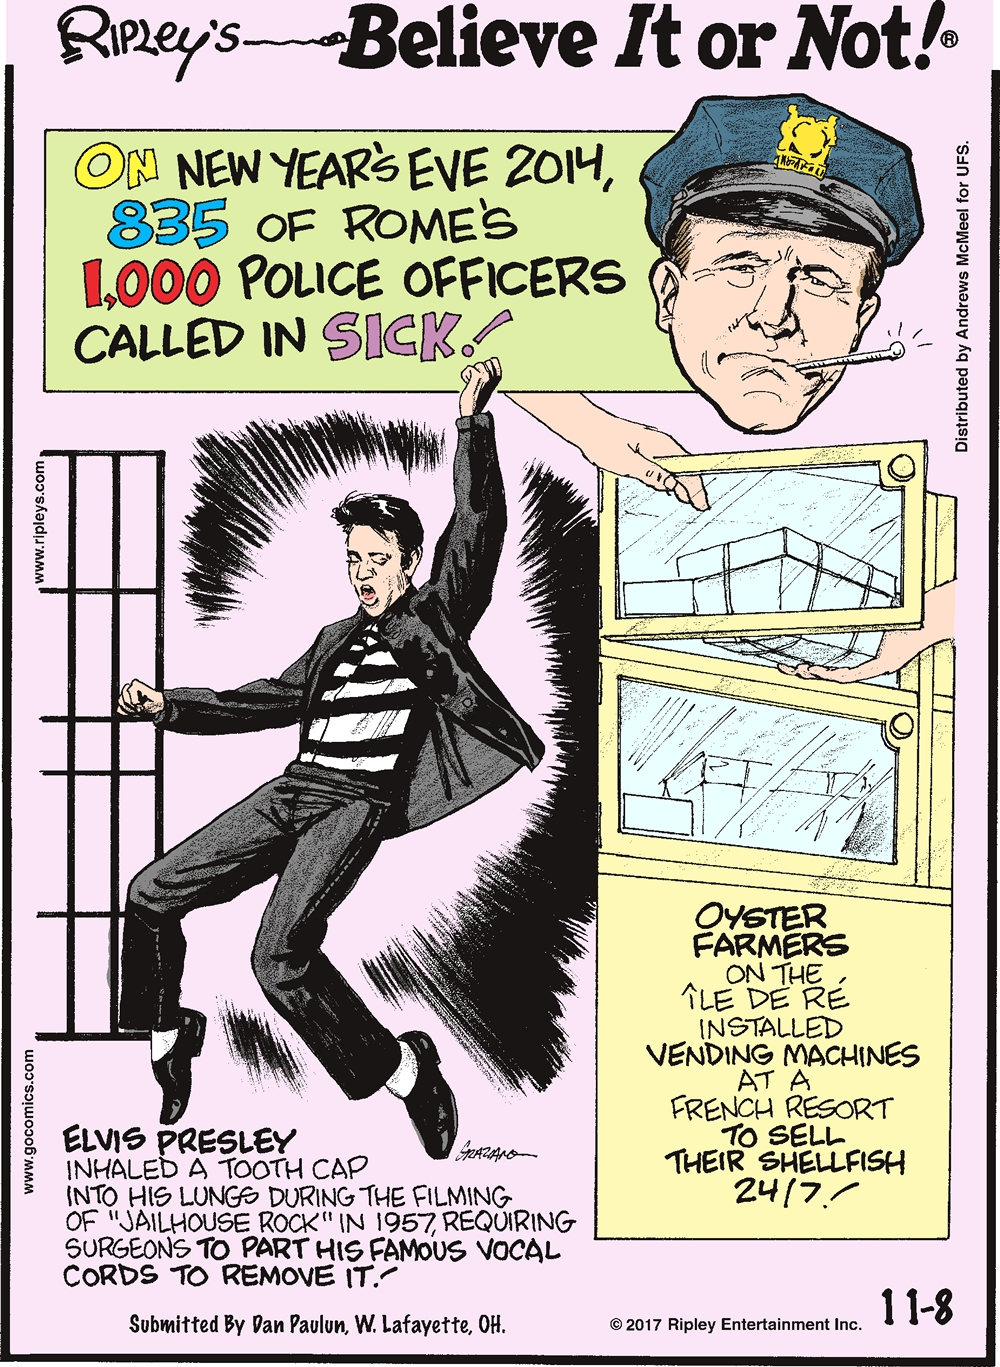 """On New Year's Eve 2014, 835 of Rome's 1,000 police officers called in sick!--------------------- Elvis Presley inhaled a tooth cap into his lungs during the filming of """"Jailhouse Rock"""" in 1957, requiring surgeons to part his famous vocal cords to remove it! Submitted by Dan Paulun, W. Lafayette, OH.-------------------- Oyster farmers on the Ile De Re installed vending machines at a French resort to sell their shellfish 24/7!"""